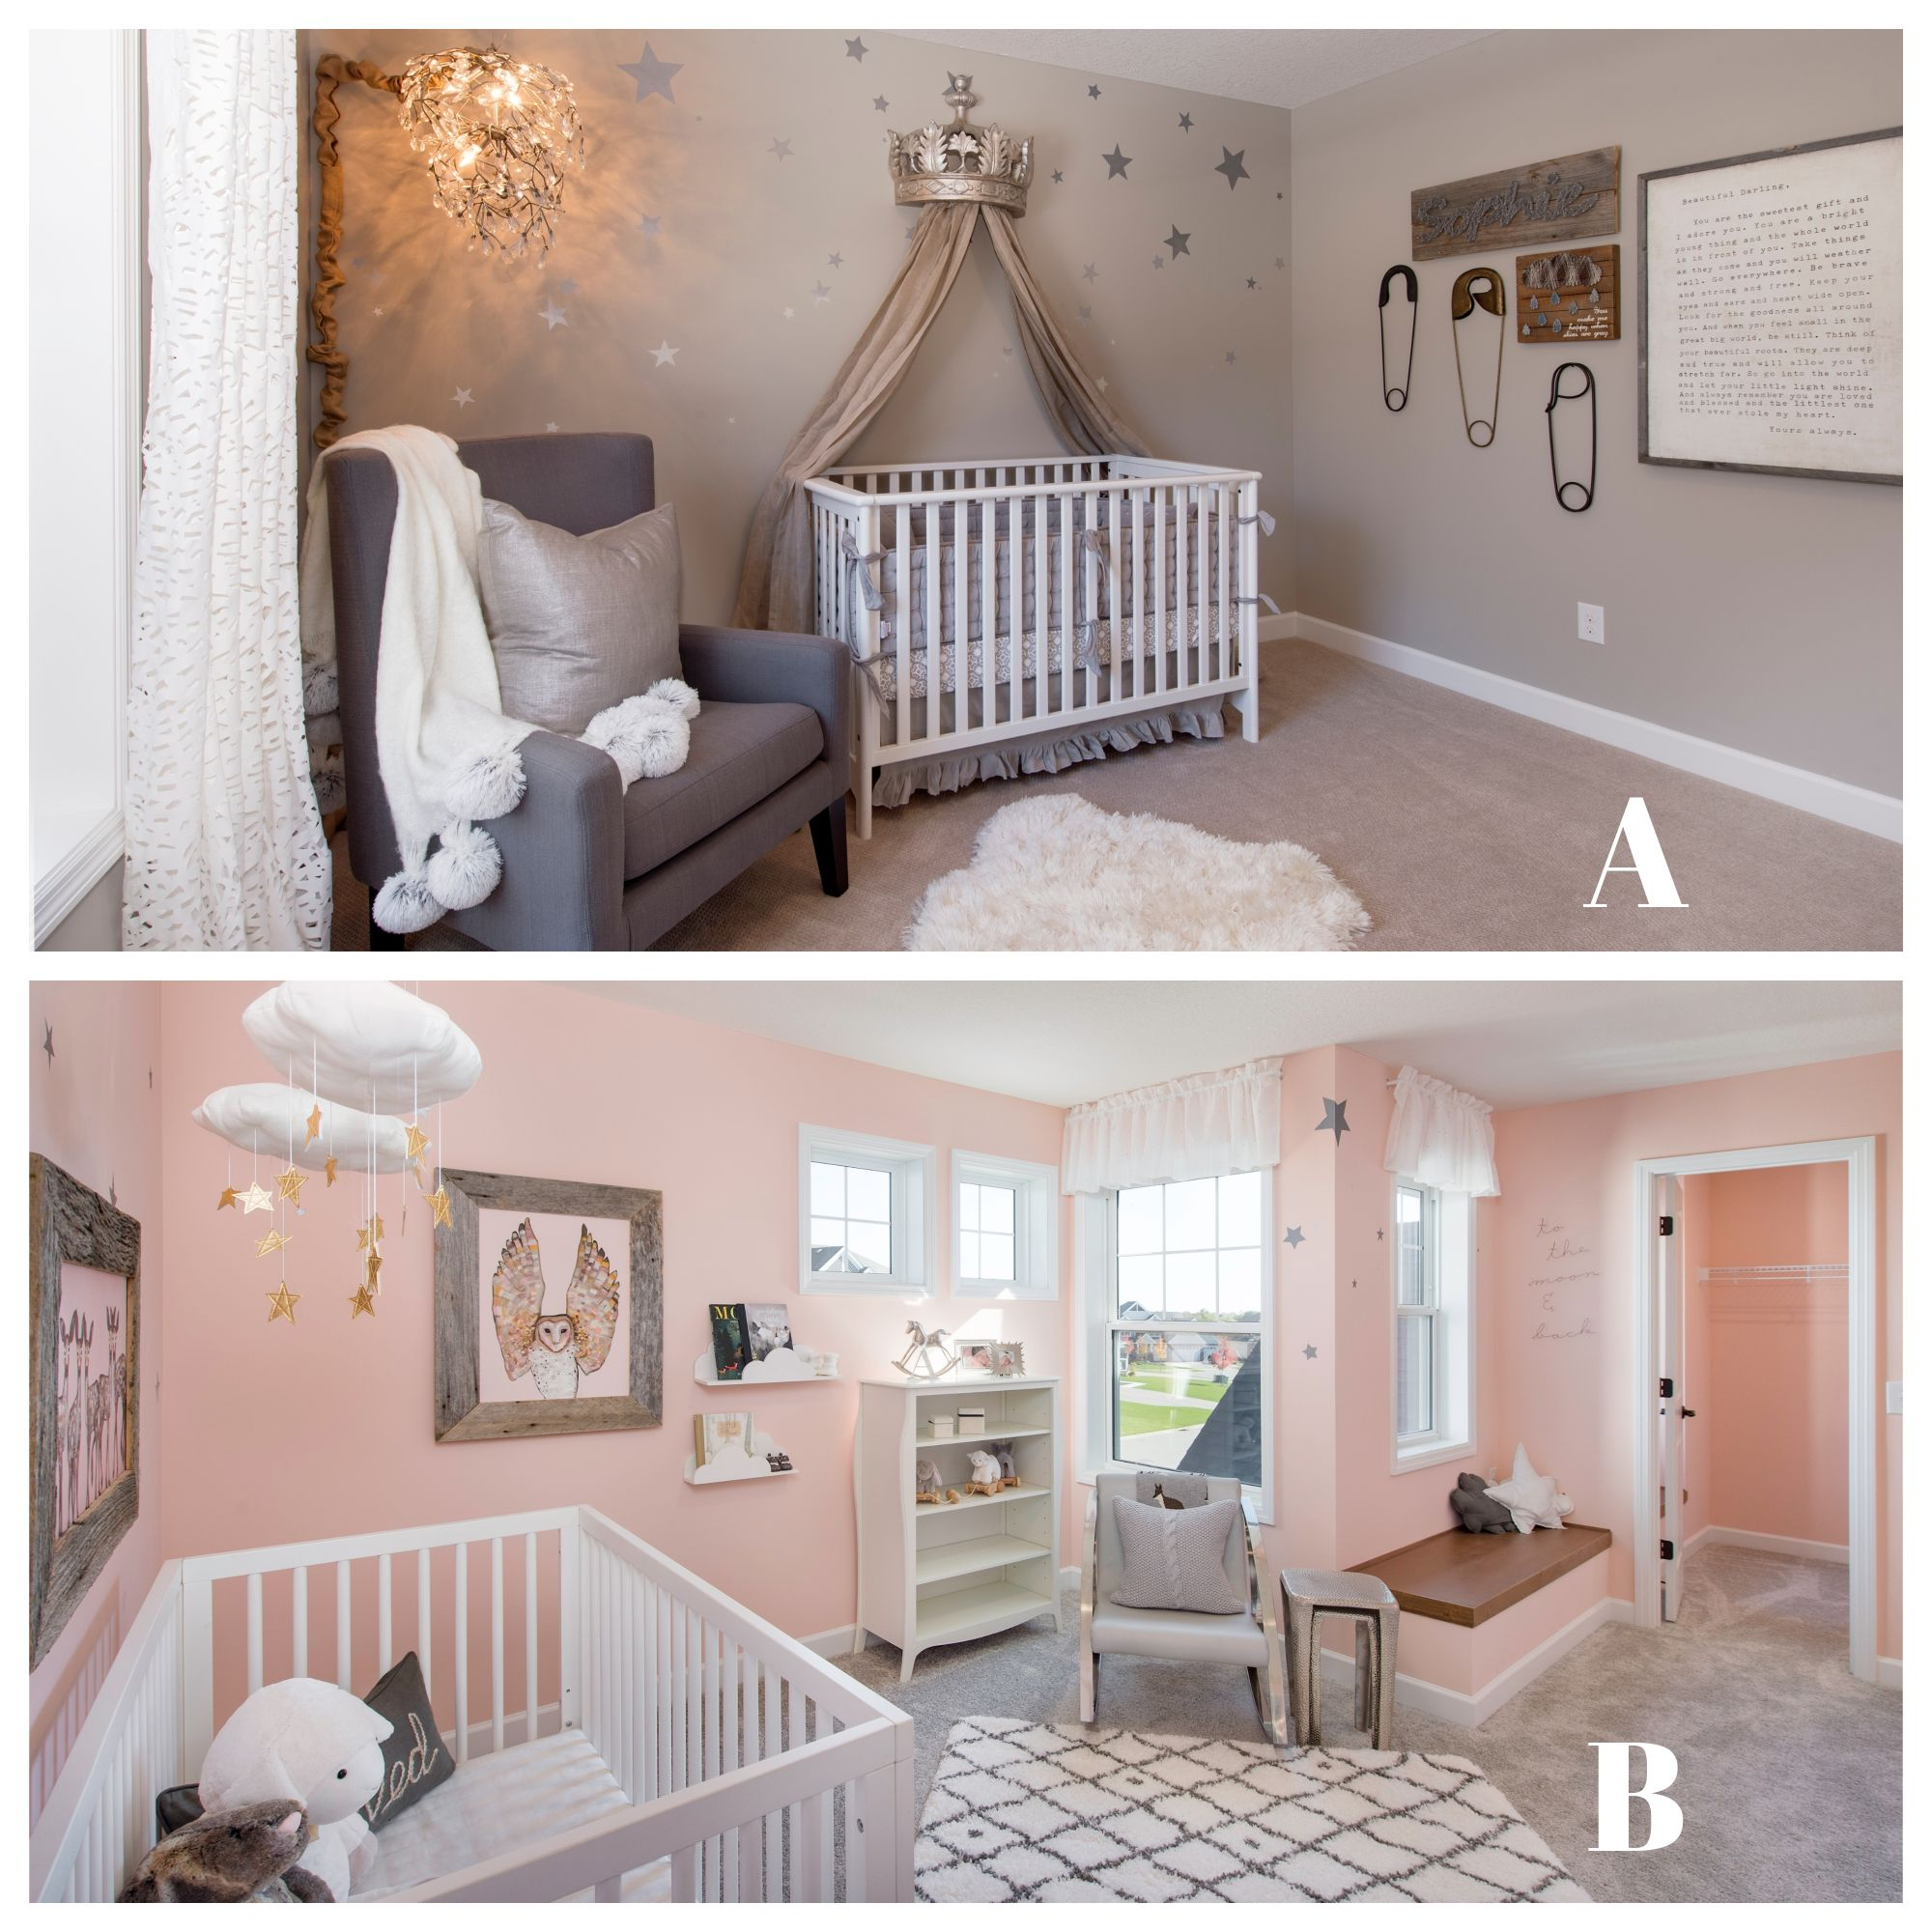 Which Nursery Design Do You Like Better Minnesota Home New Homes For Sale New Homes